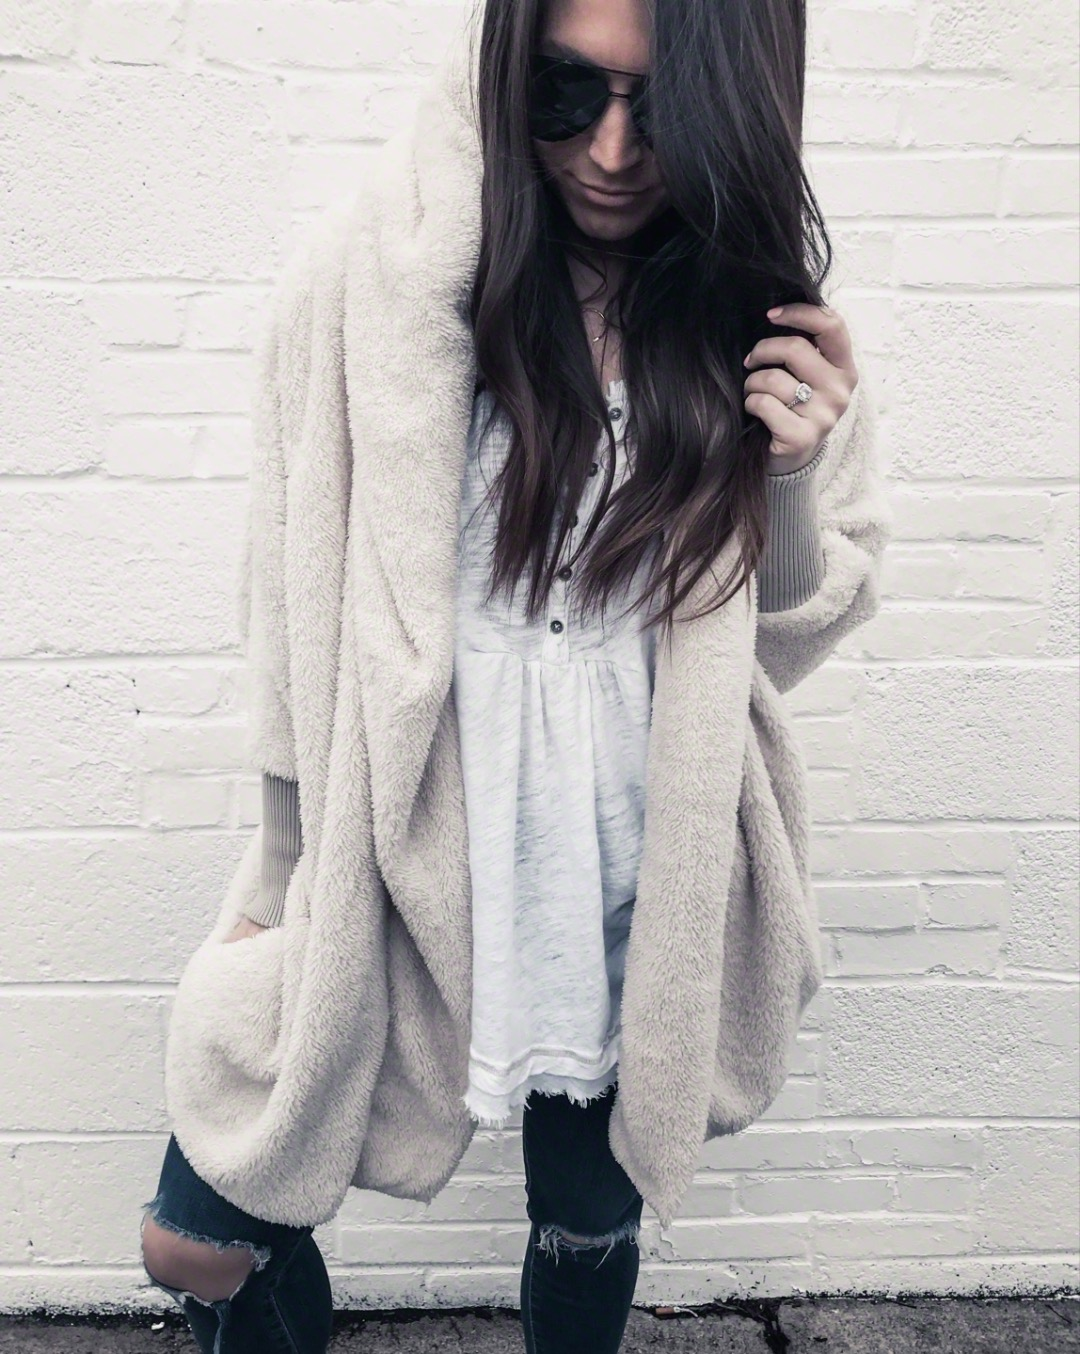 Must Have White Top for Spring | Pine Barren Beauty | winter outfit idea, winter layers, teddy bear hoodie, cozy outfit idea